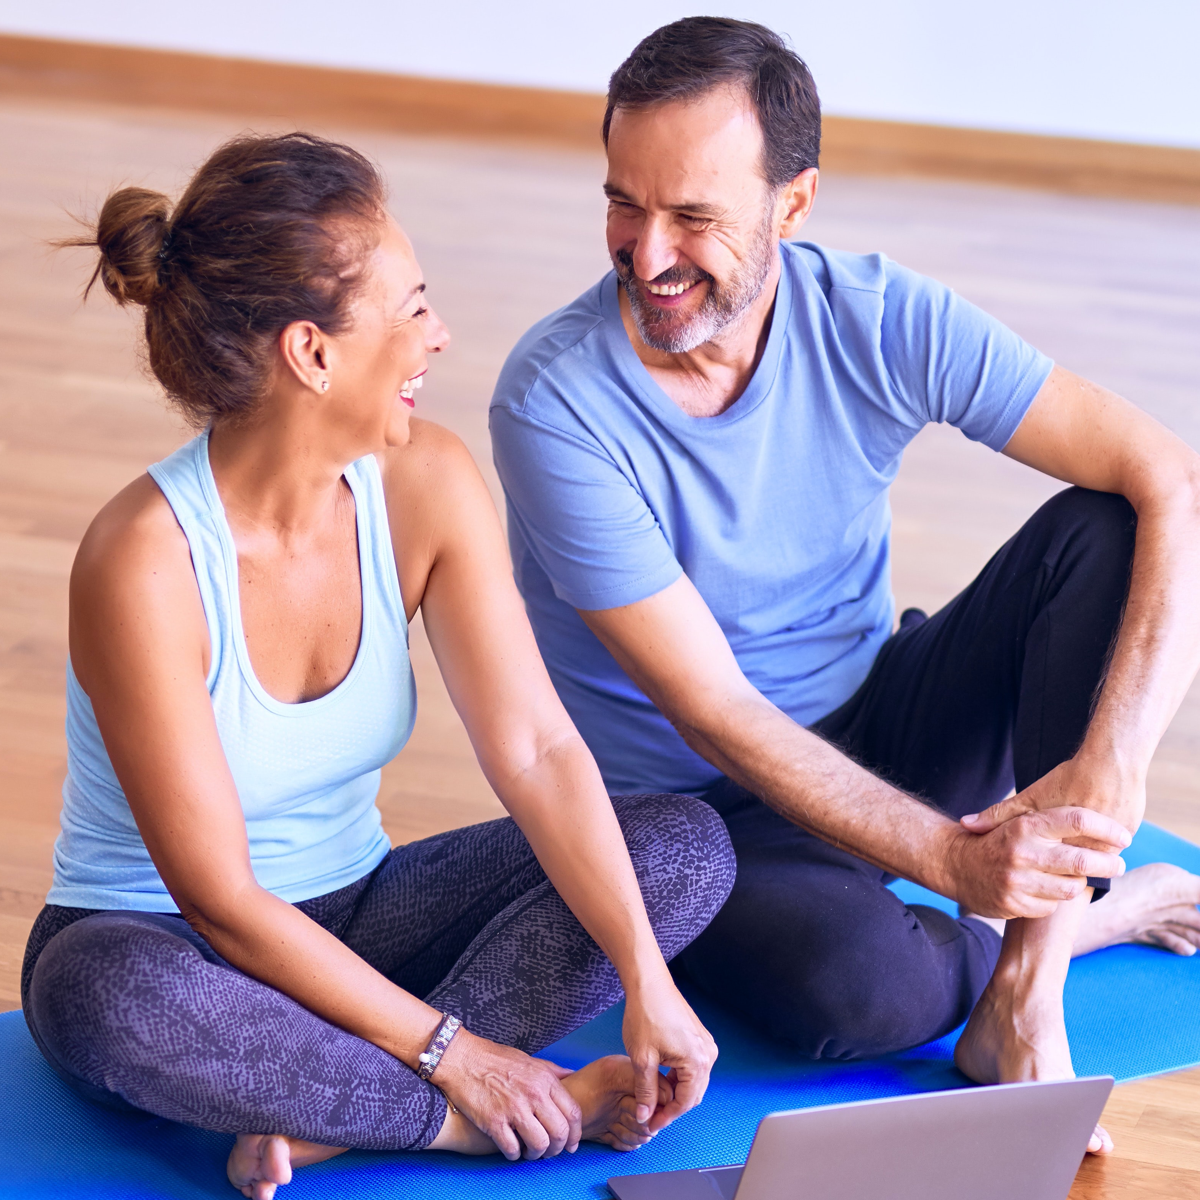 A woman and a man having a conversation on a yoga mat